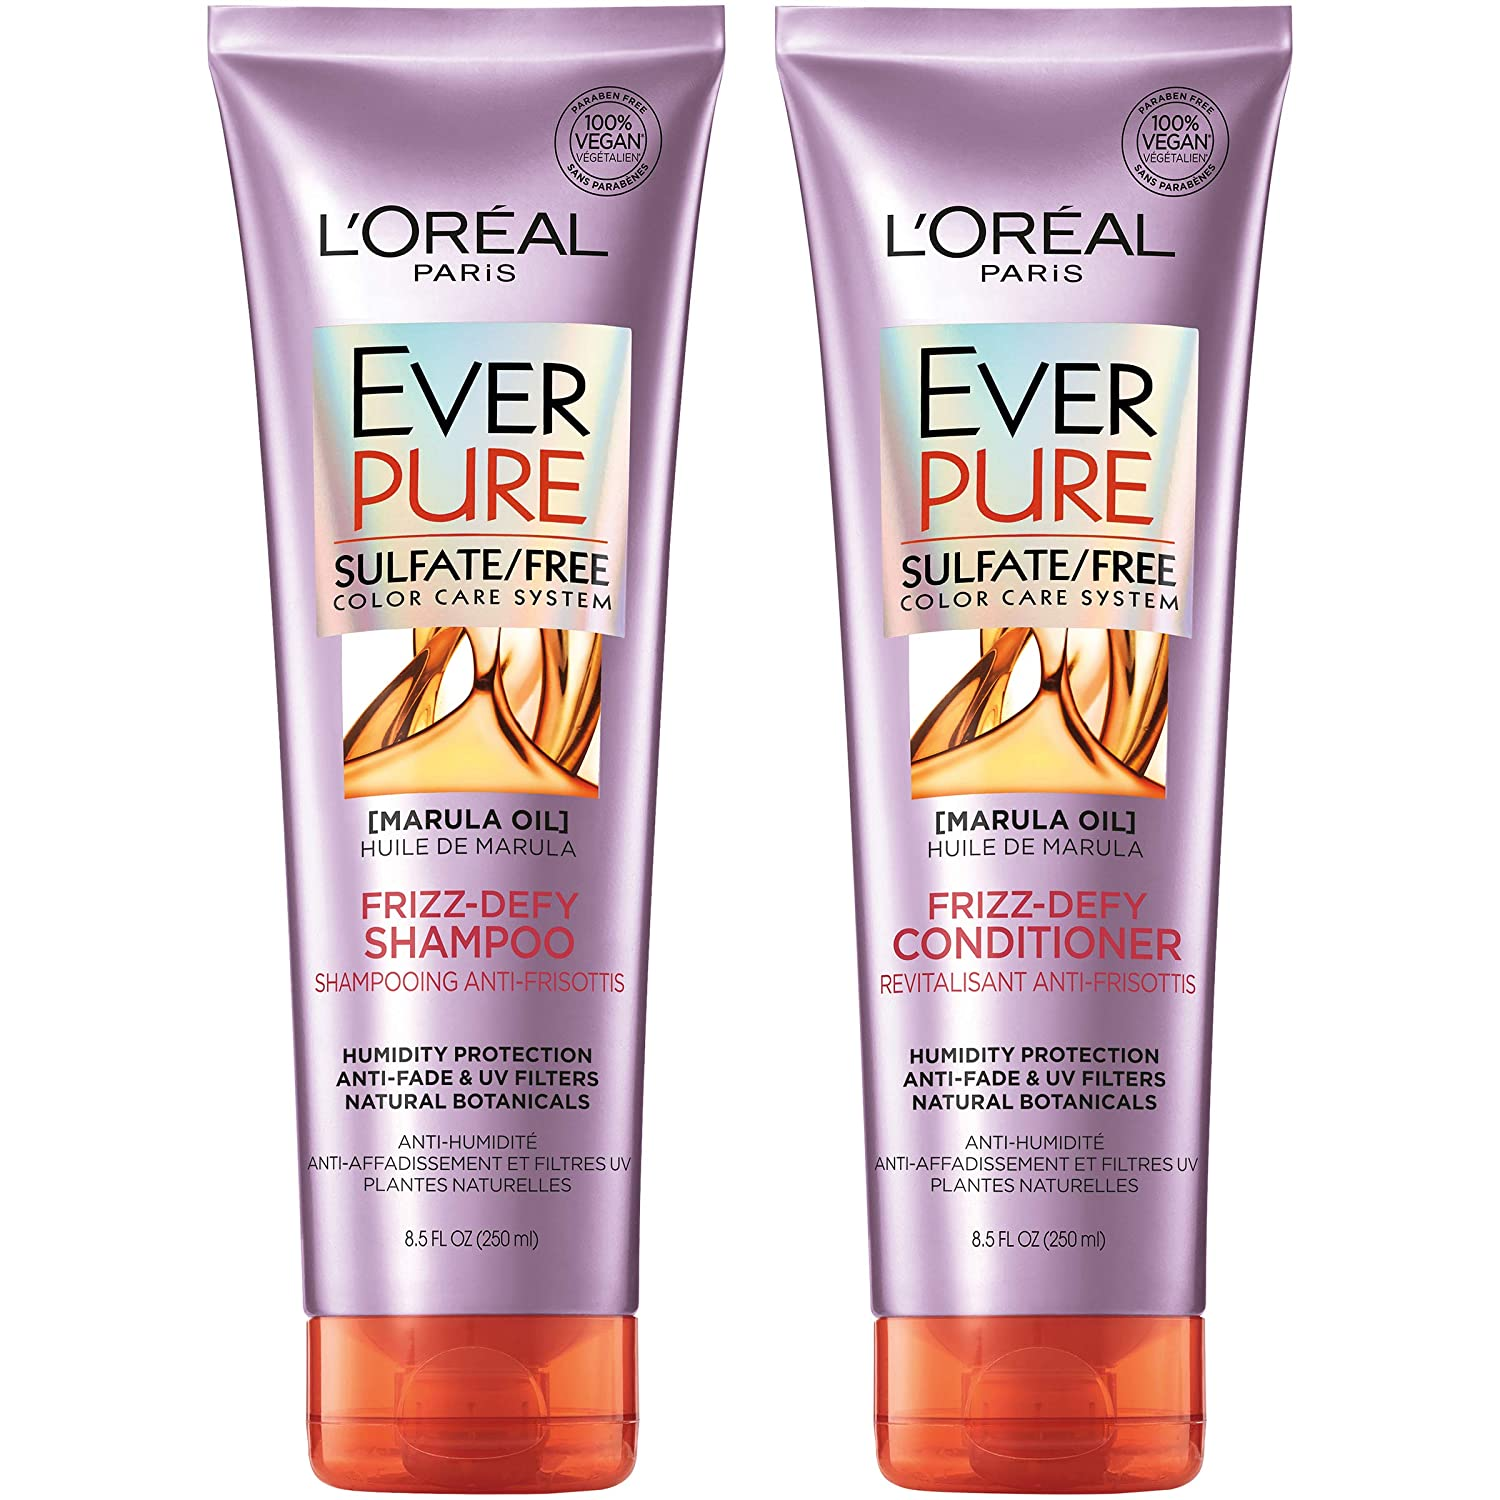 L'oreal Paris Best Hair Straightening Shampoo And Conditioner